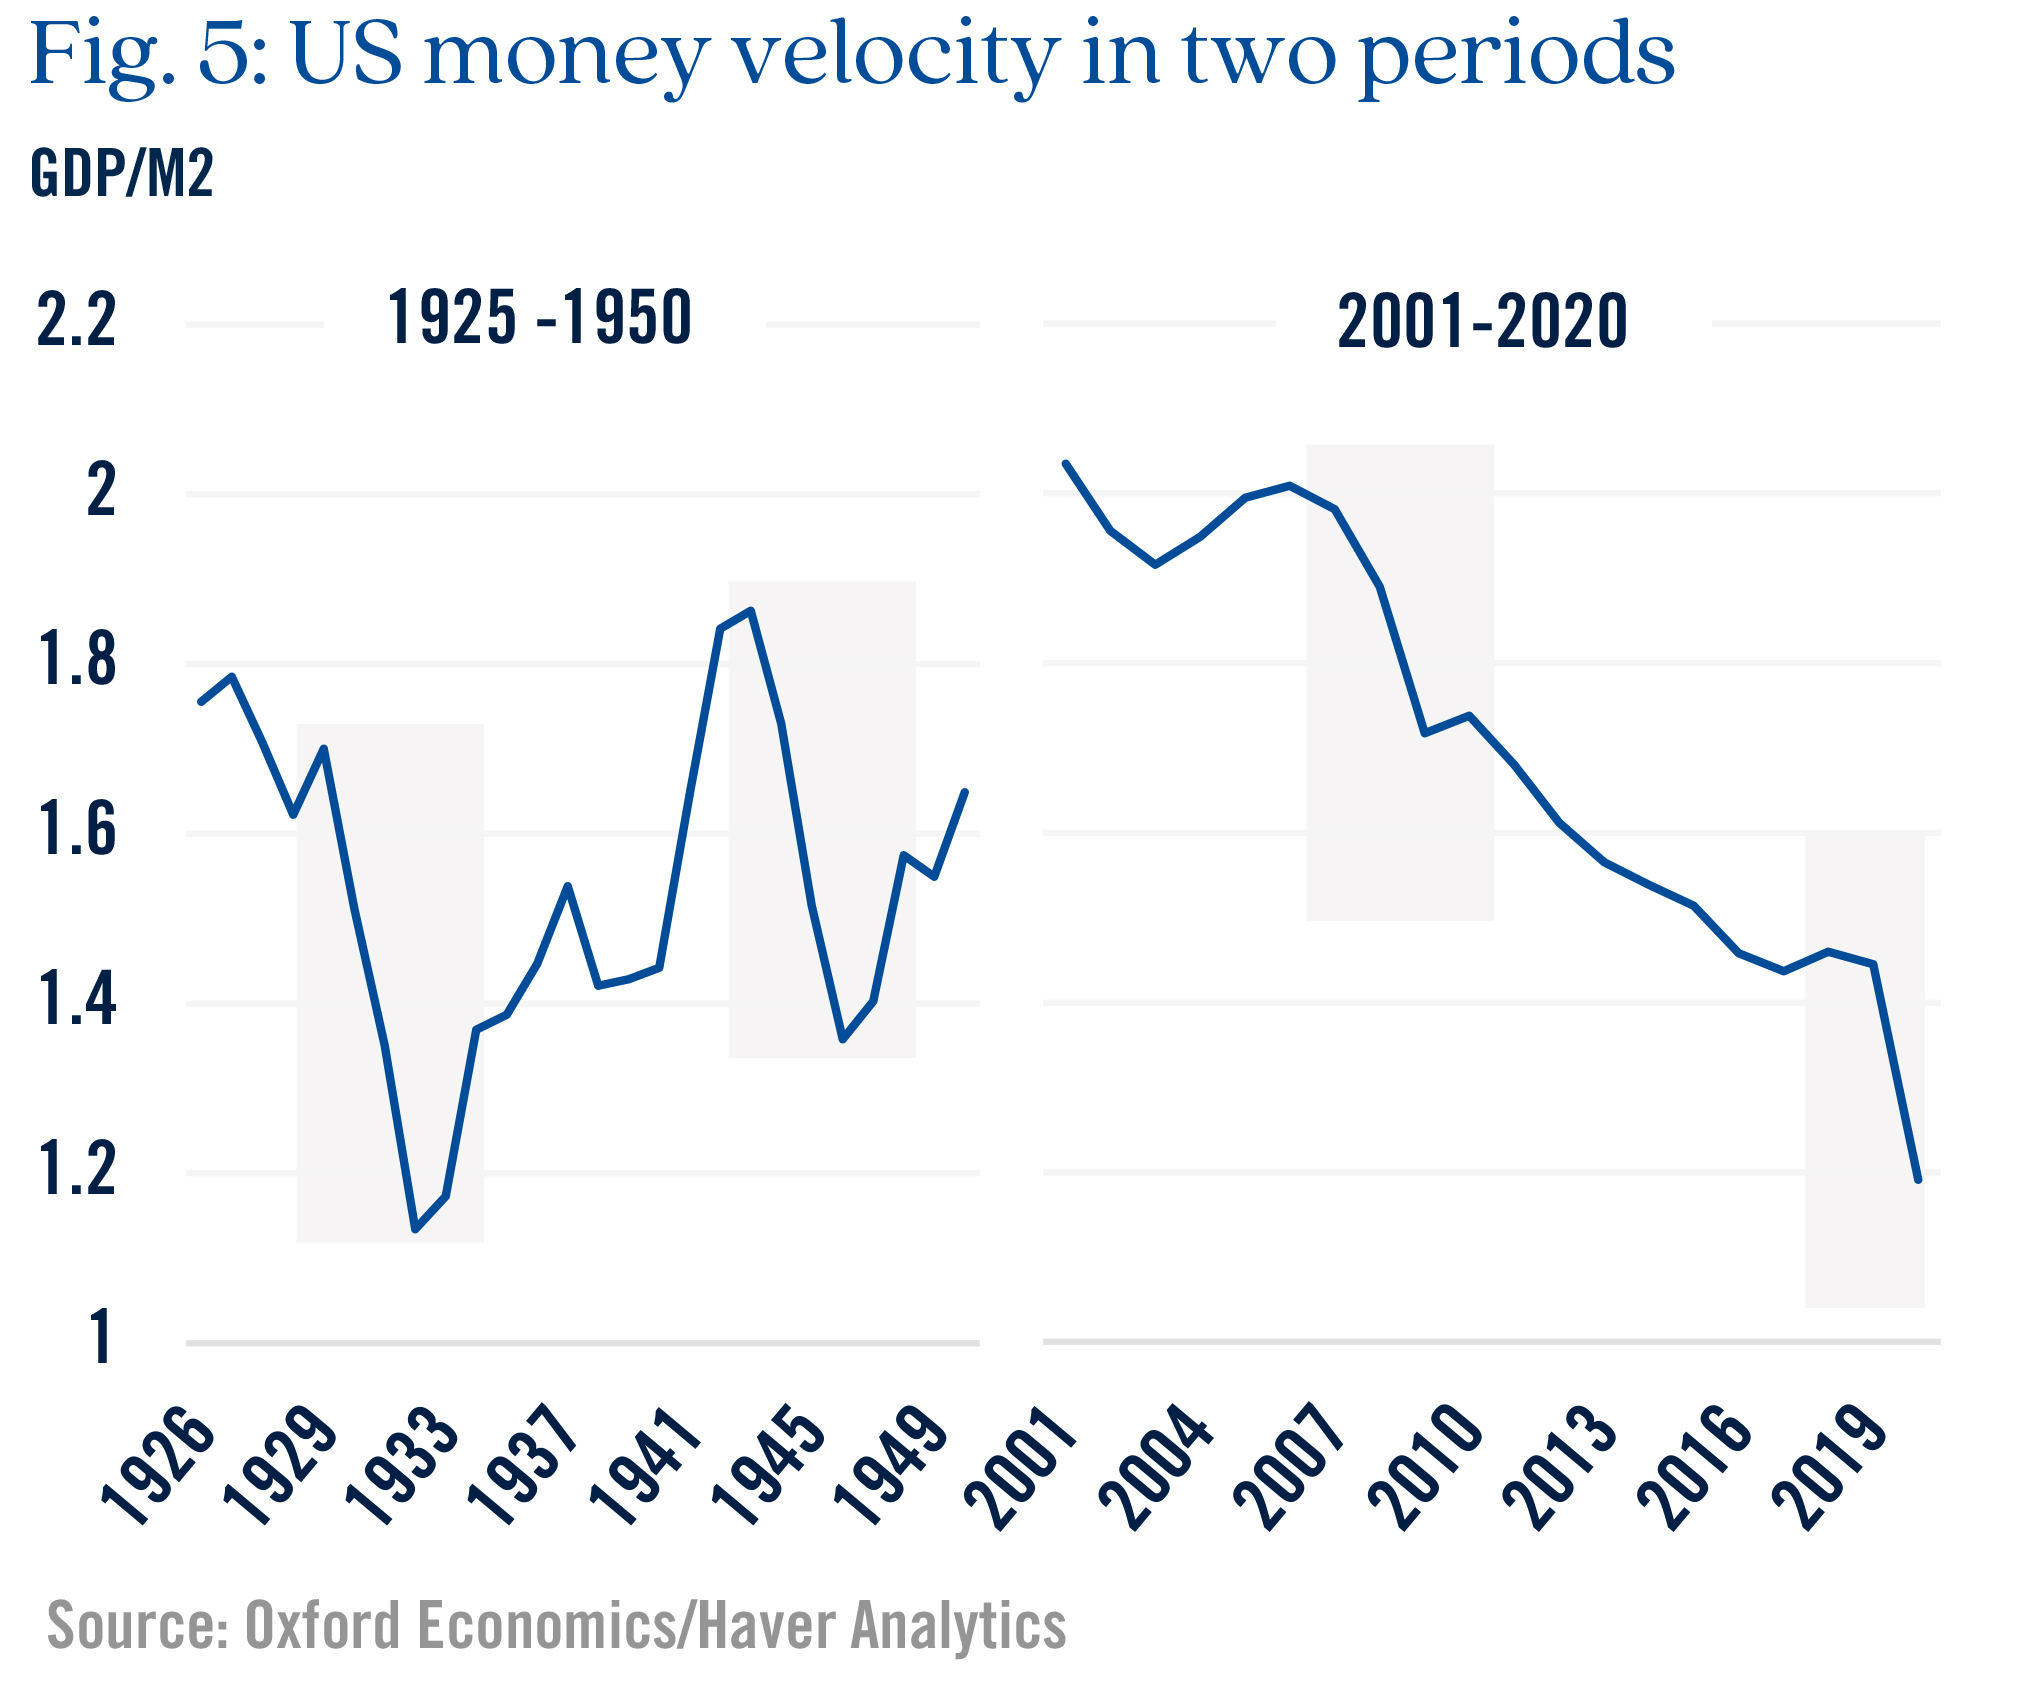 Figure 5 US money velocity in two periods